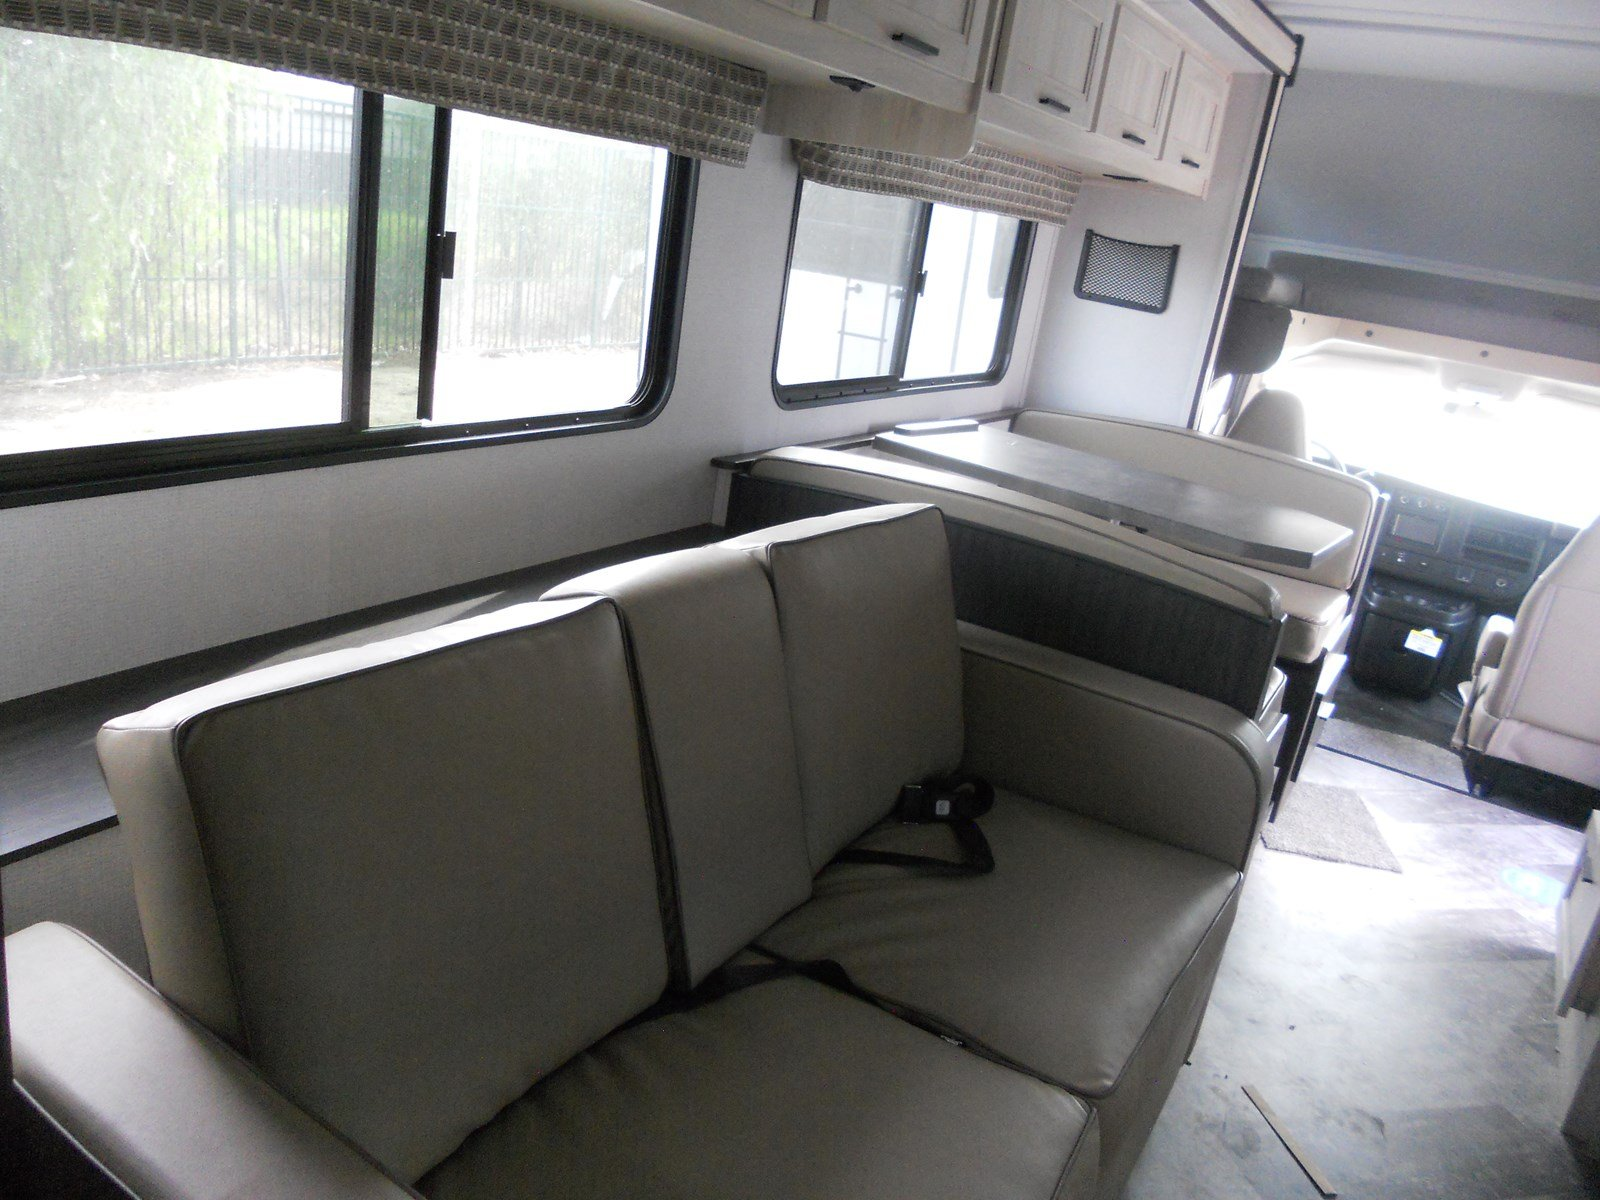 FUTON AND DINETTE CONVERT TO BEDS. Forest River Sunseeker 2550SL 2021